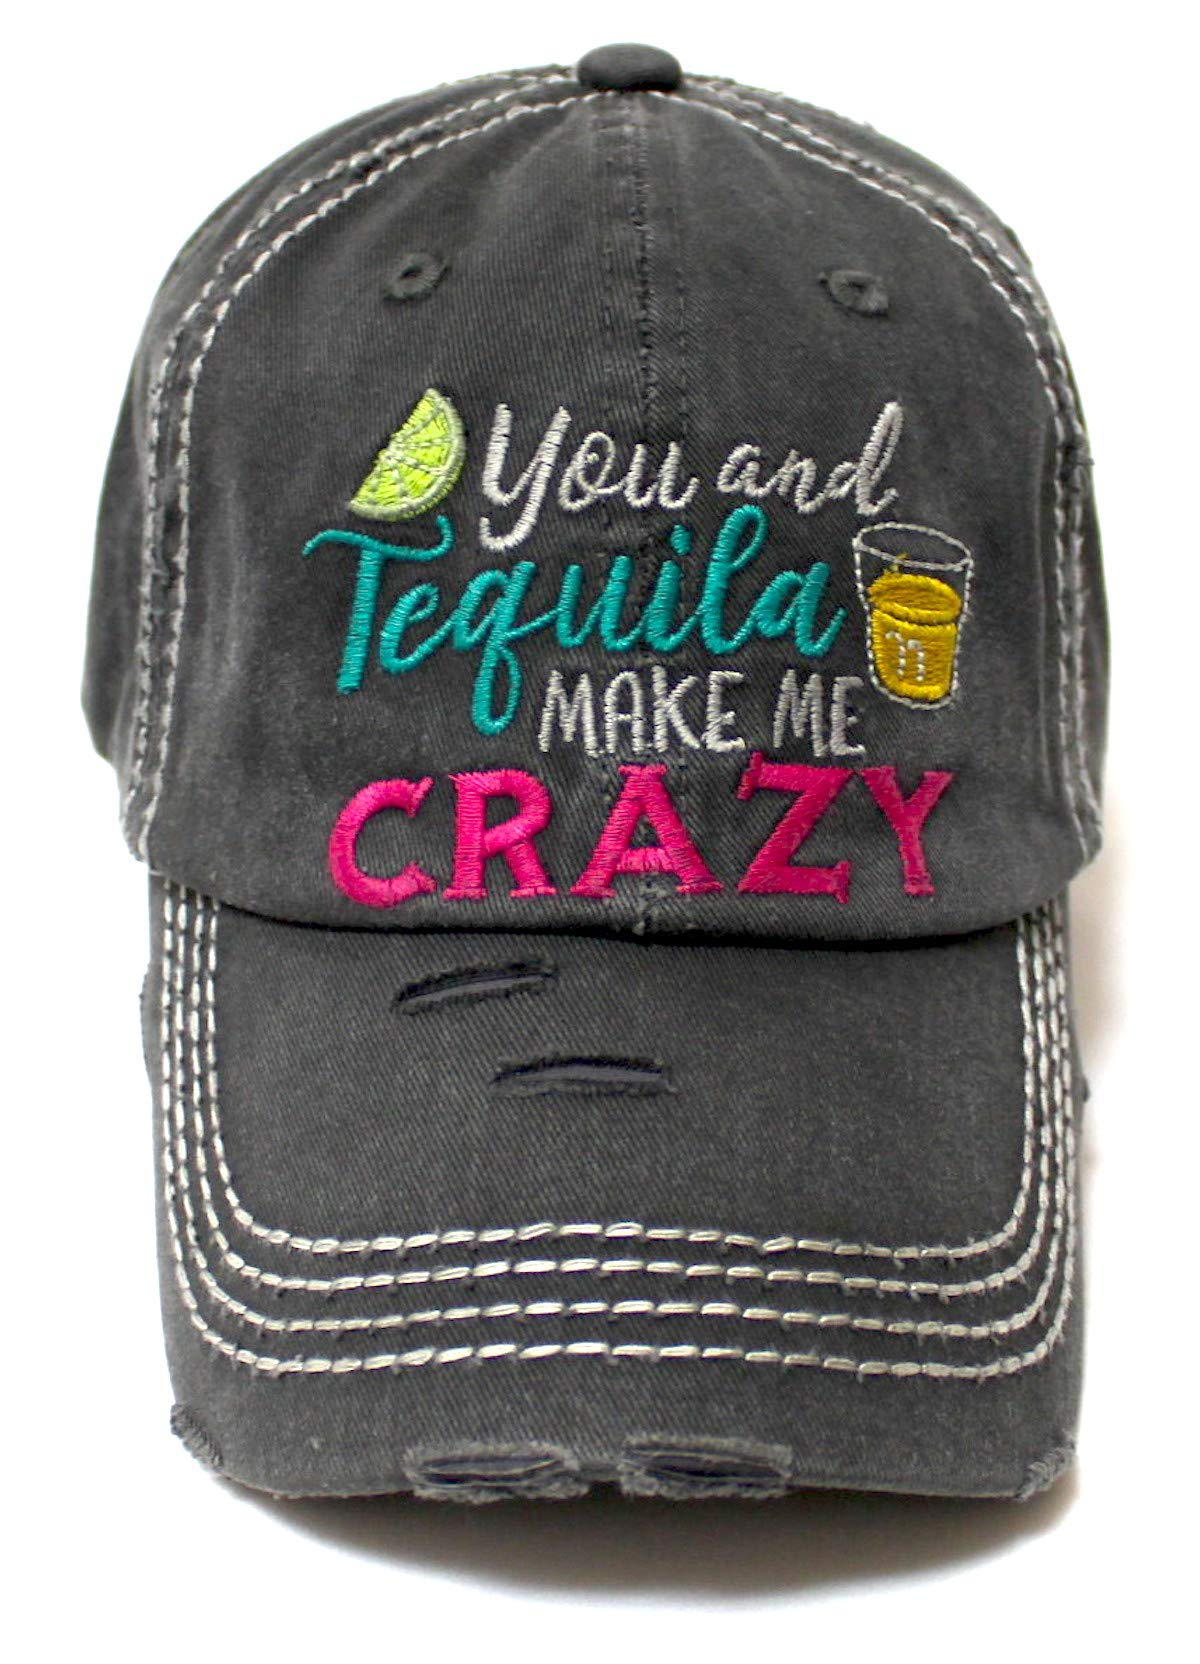 Women's Vintage Beach Cap You Make Me Crazy Lime & Margs Monogram Embroidery Baseball Hat, Black - Caps 'N Vintage